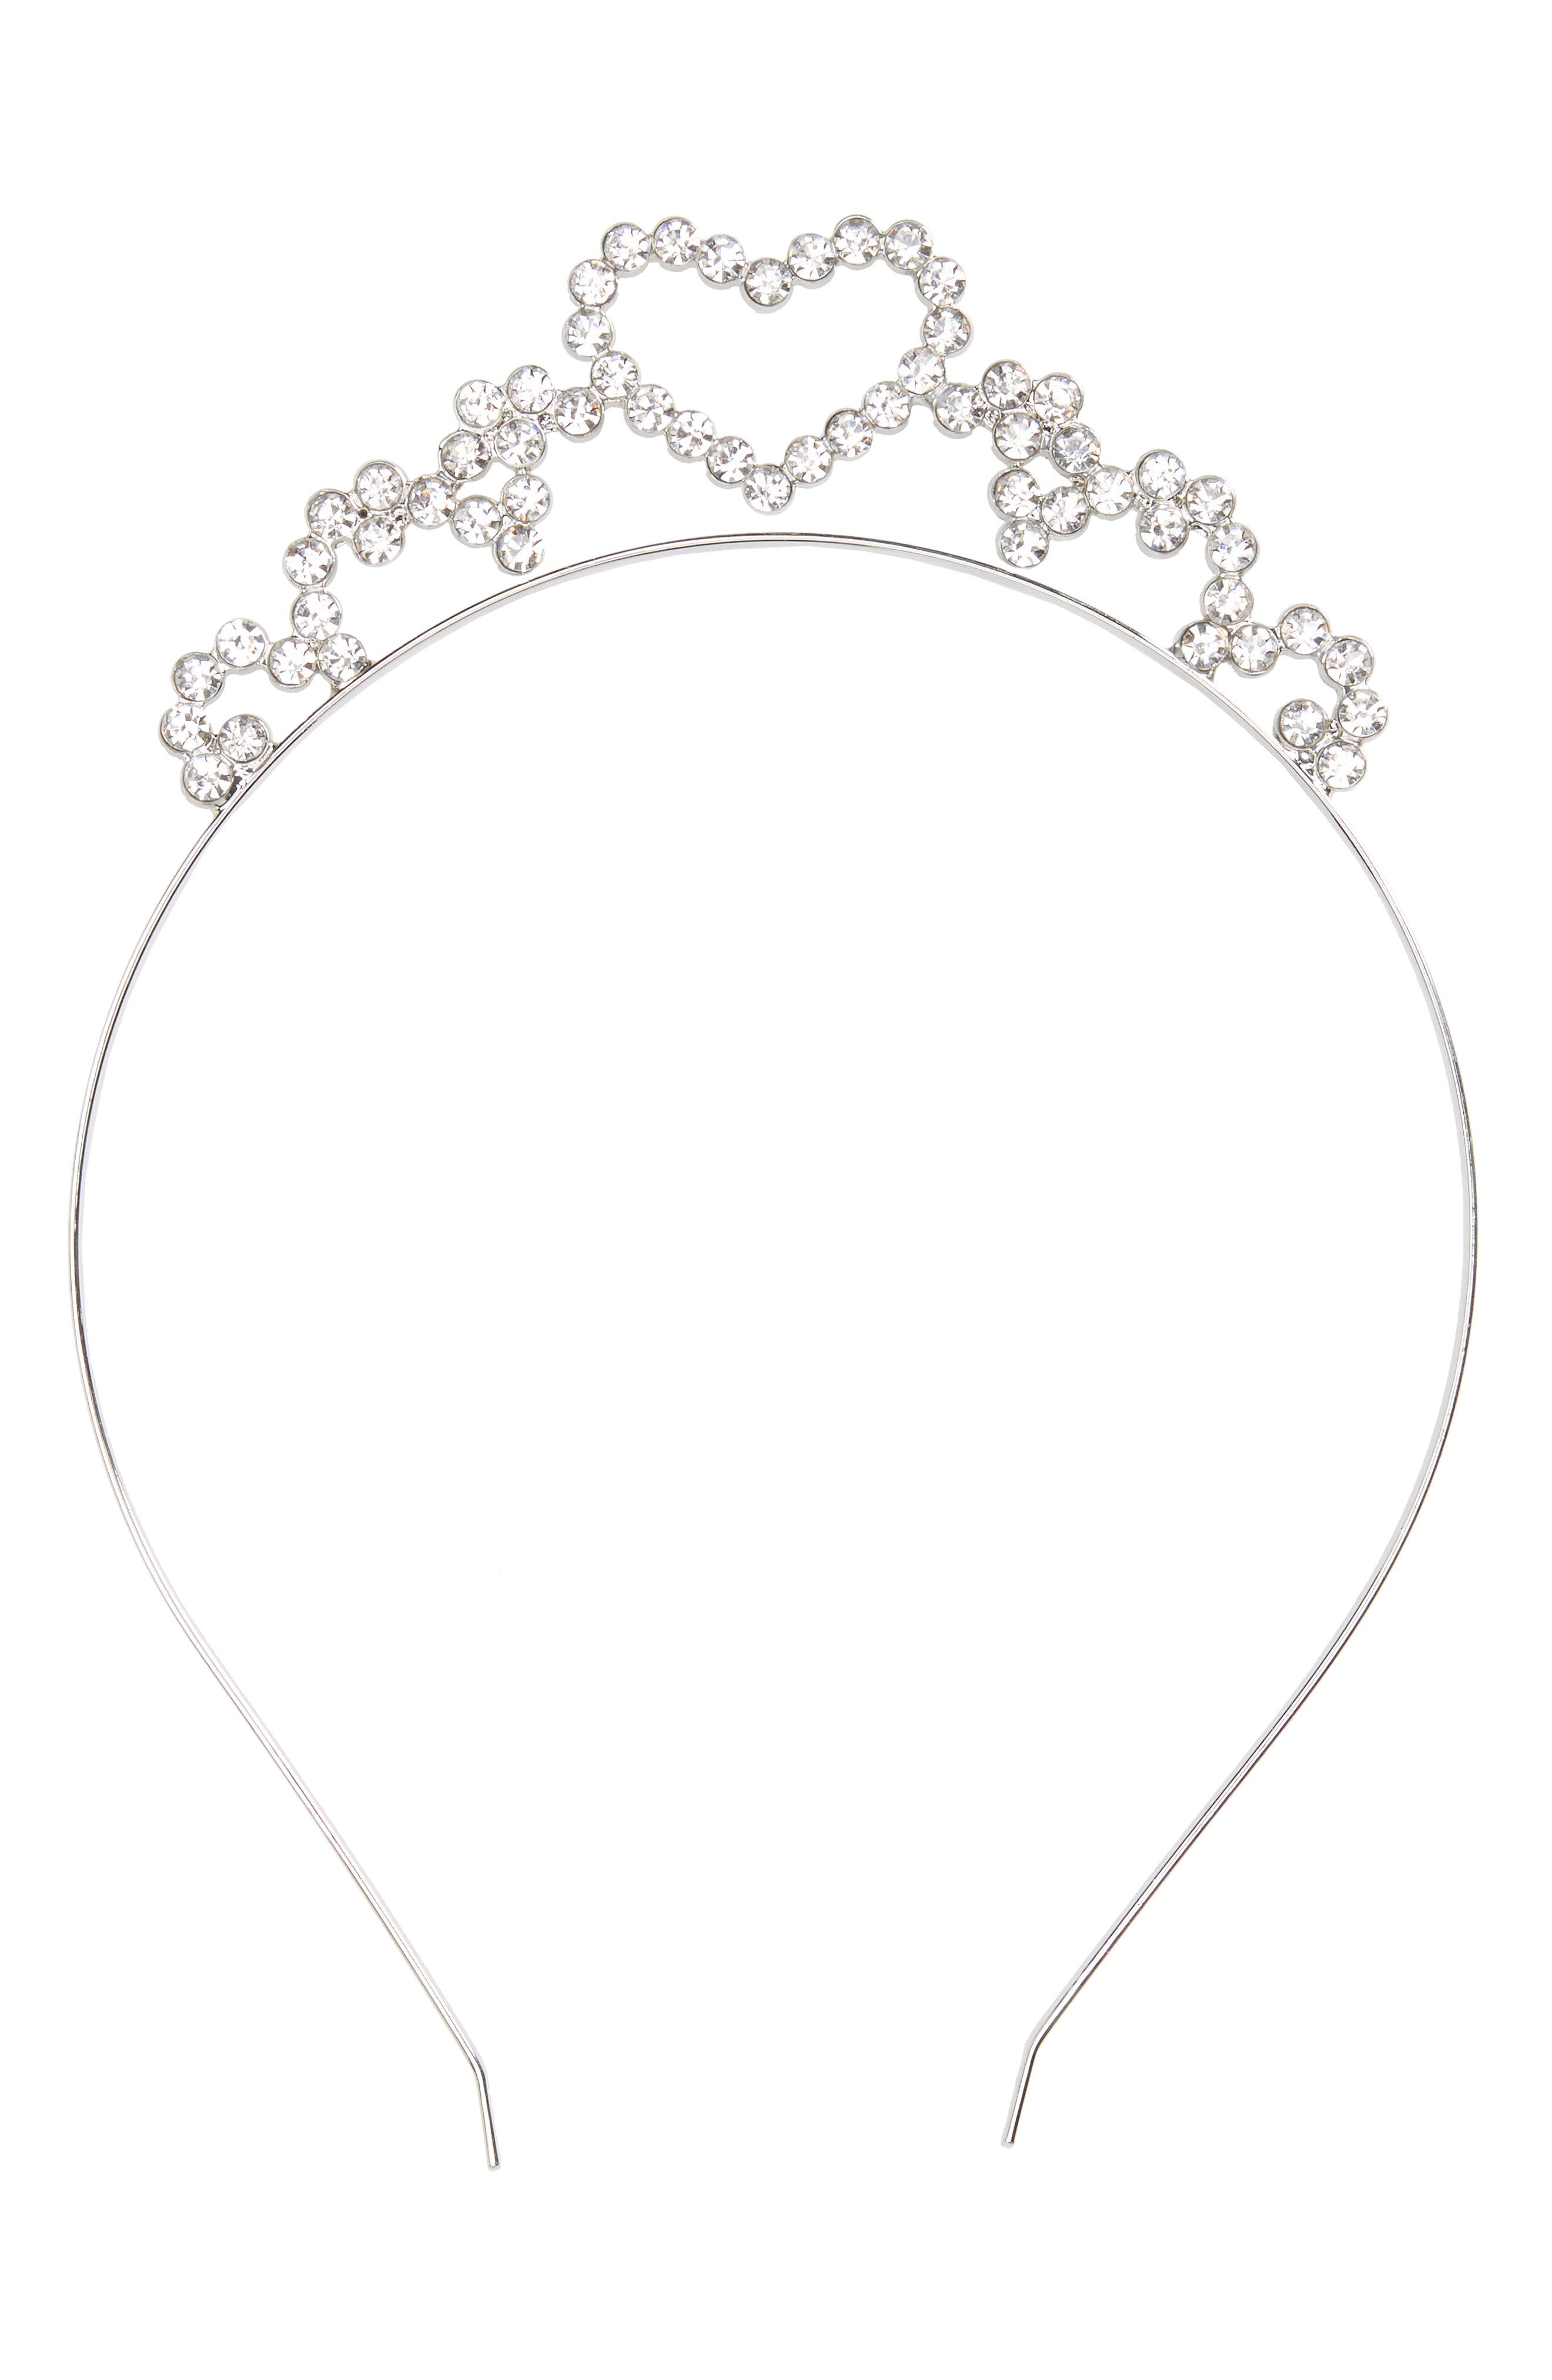 Alternate Image 1 Selected - Accessory Collective Crystal Heart Headband (Girls)